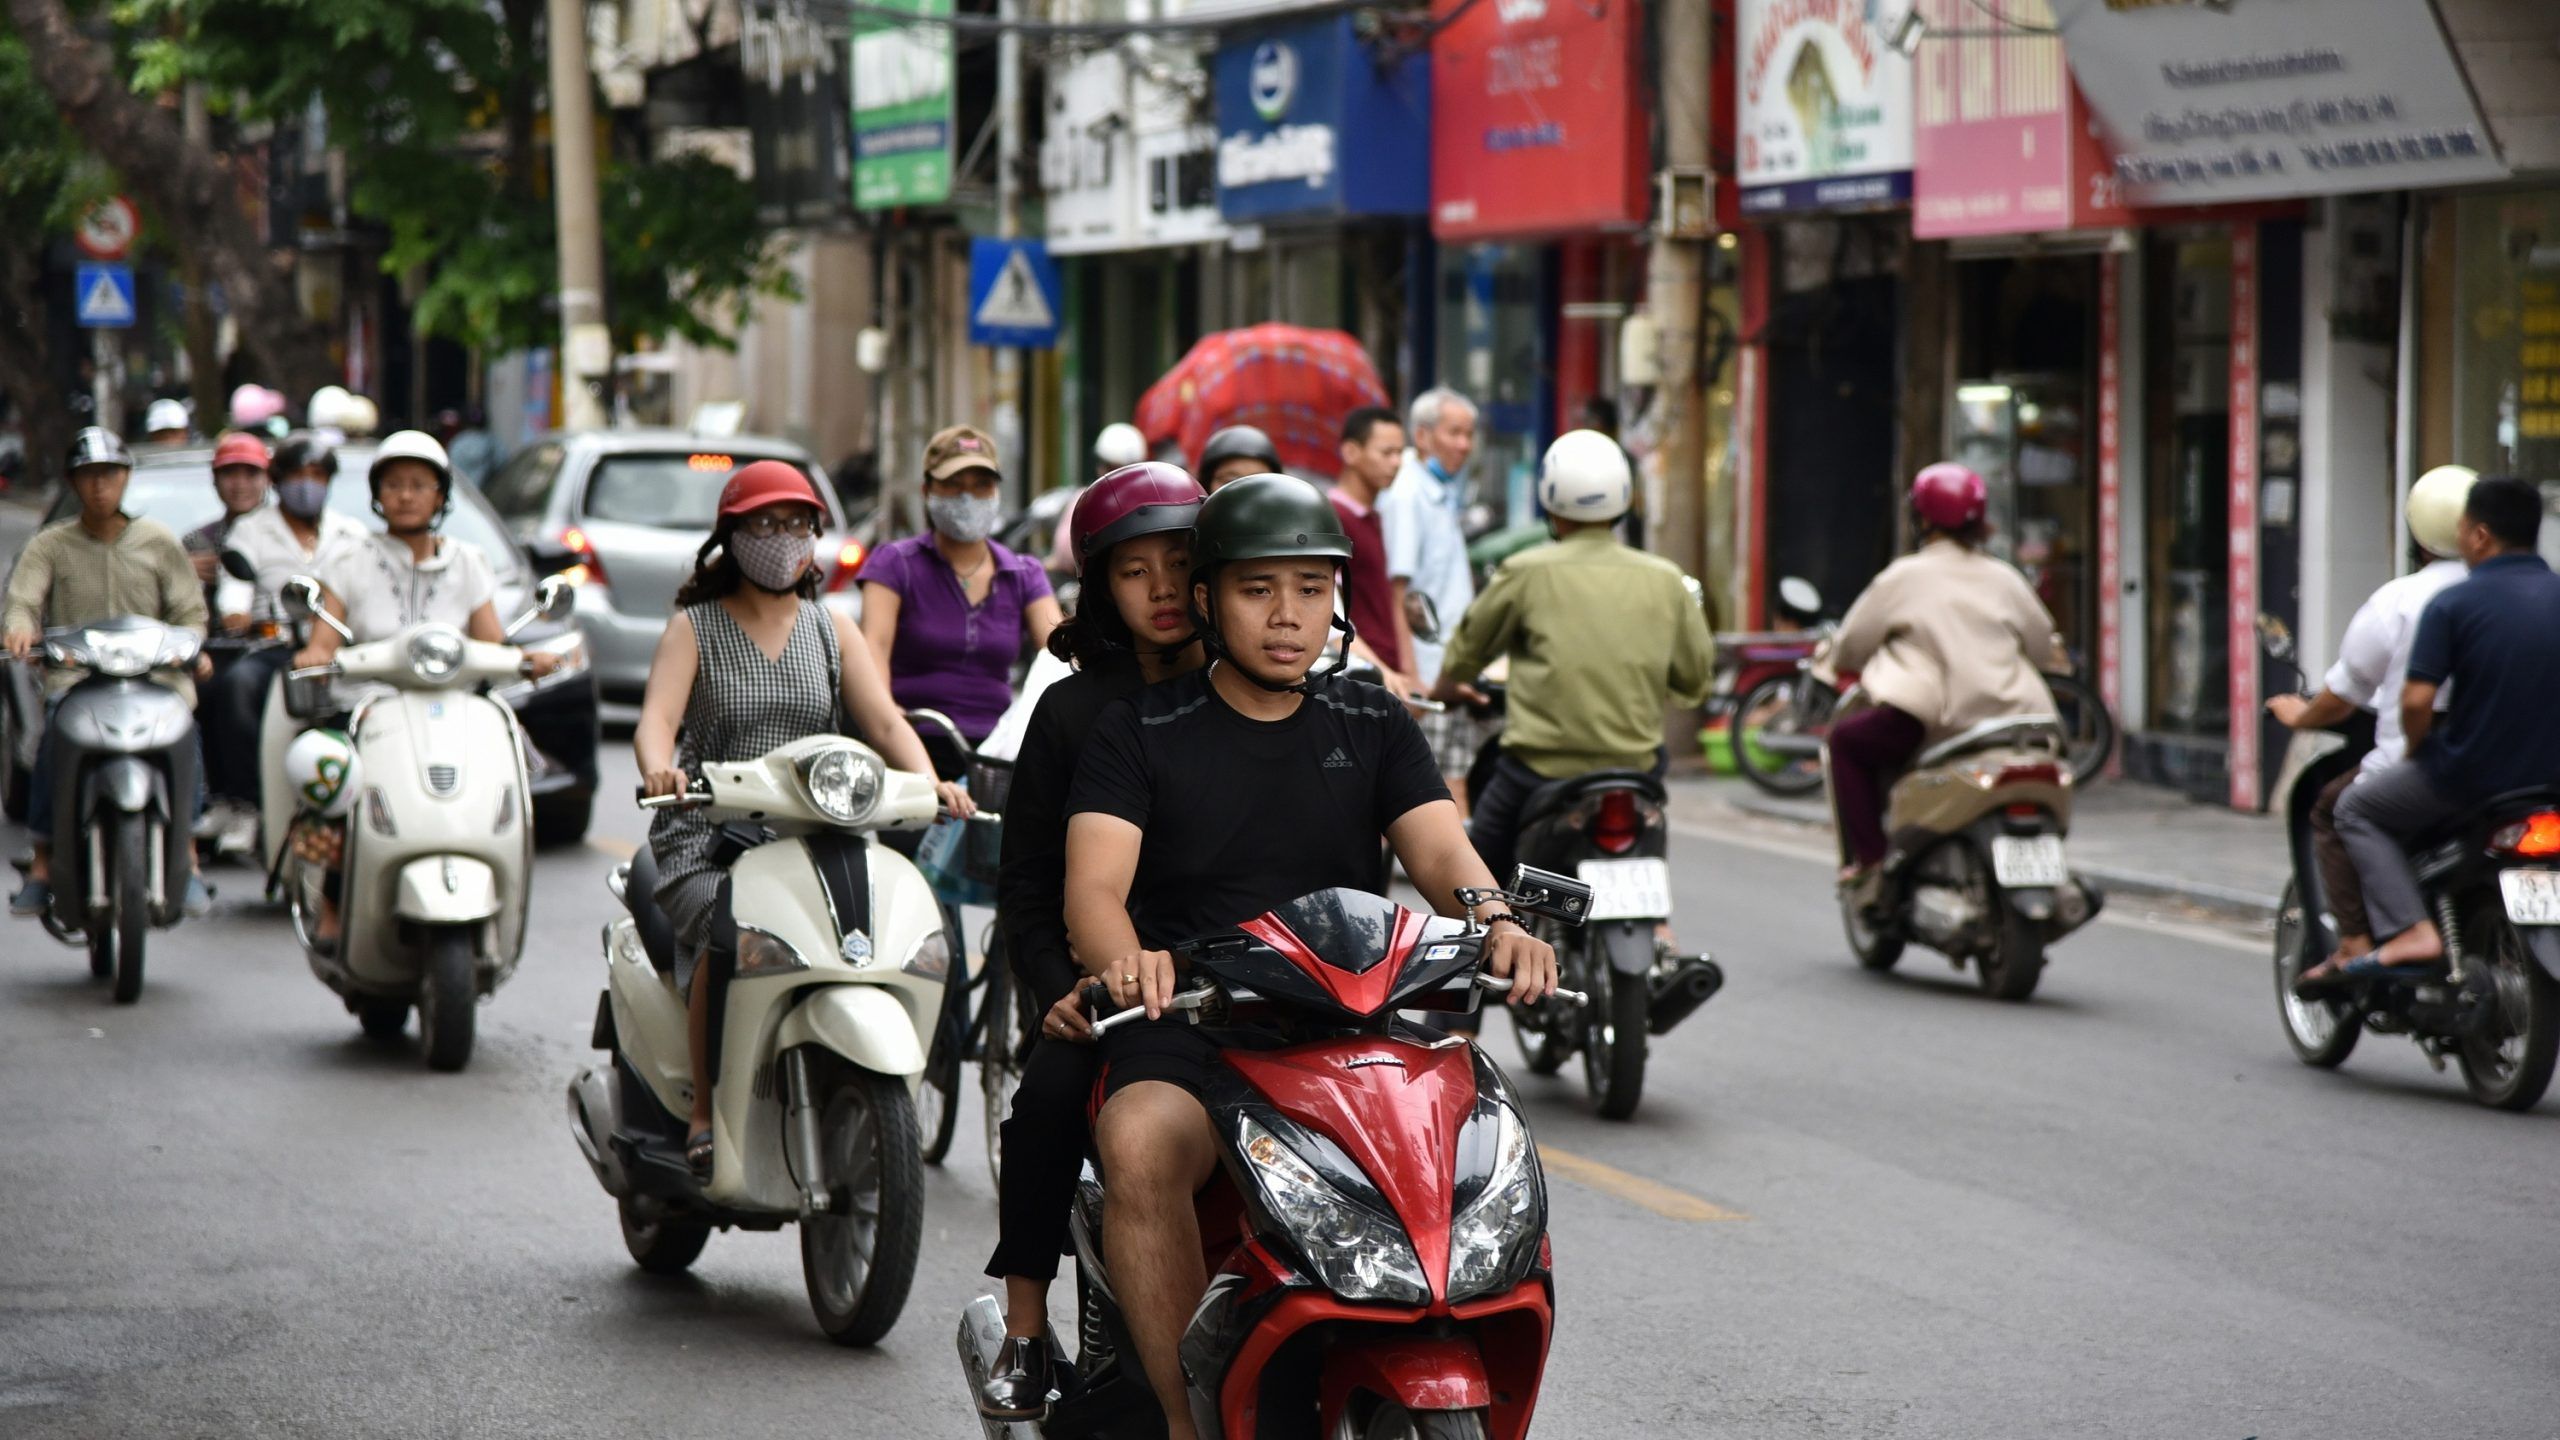 Hanoi relaxes social distancing rules after 2 months of strict lockdown